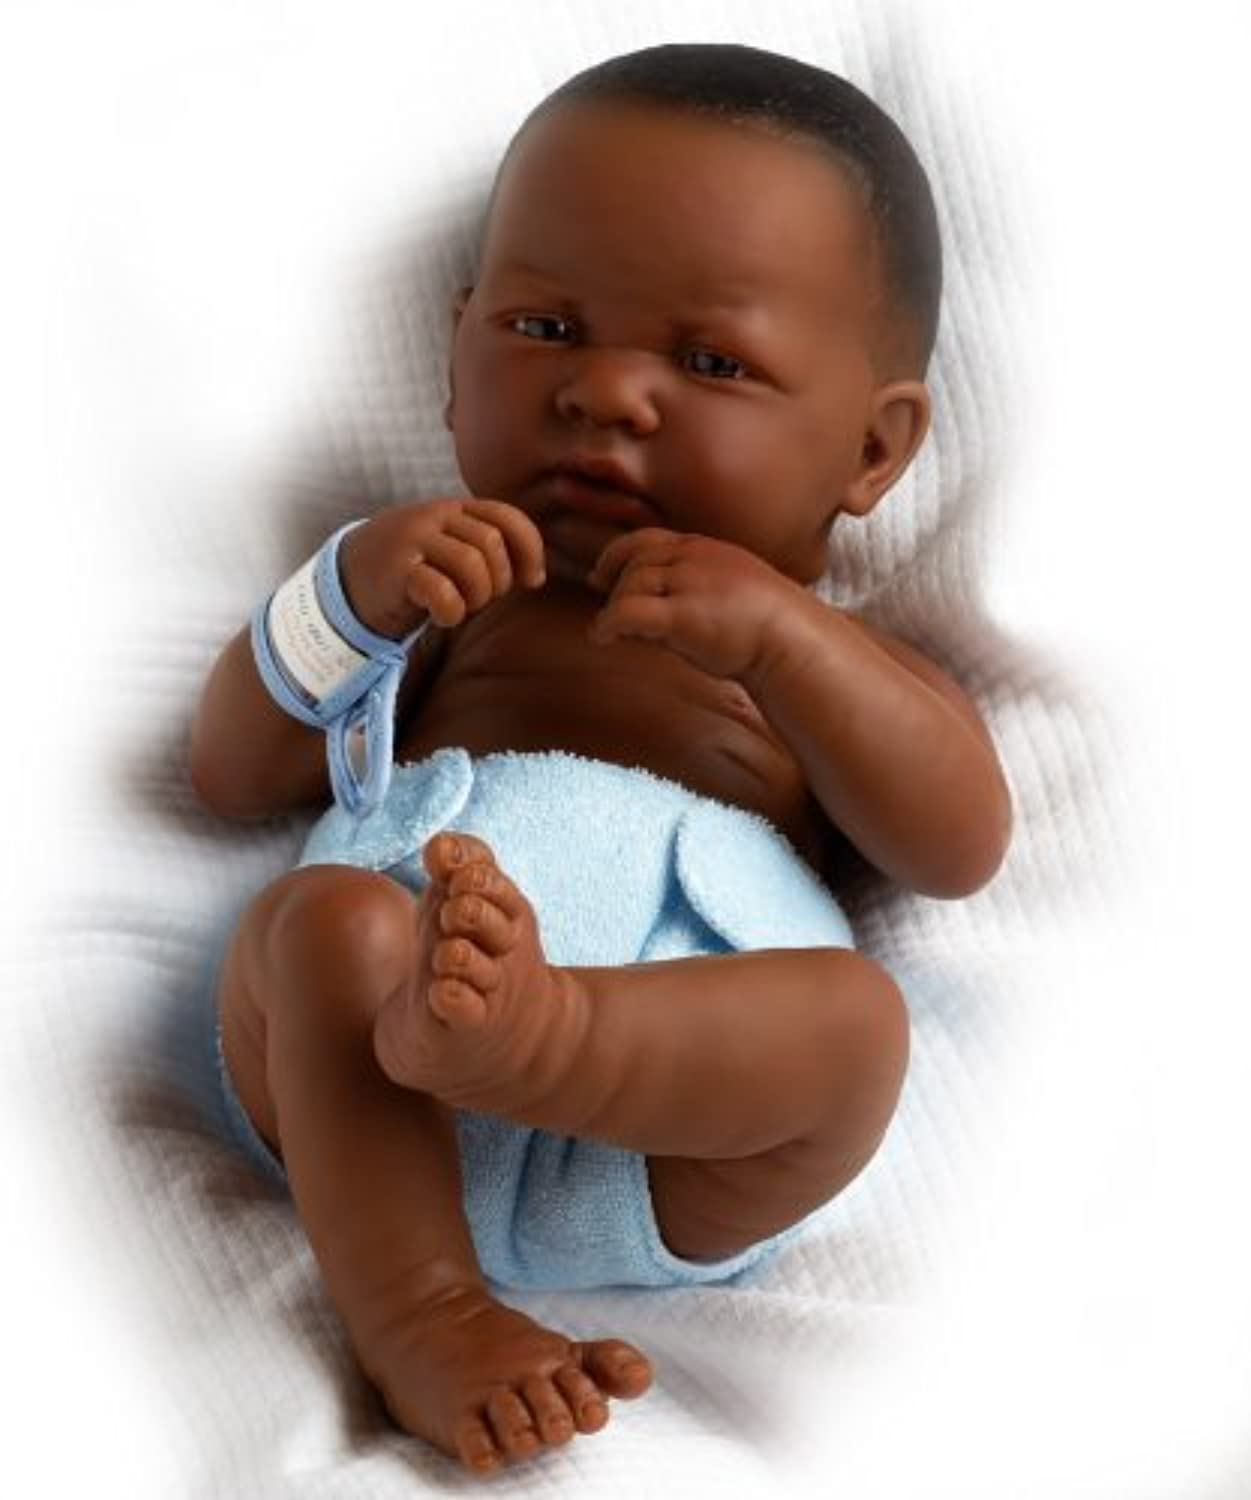 JC Toys La Newborn African American- Real Boy by JC Toys Group, Inc. TOY (English Manual)